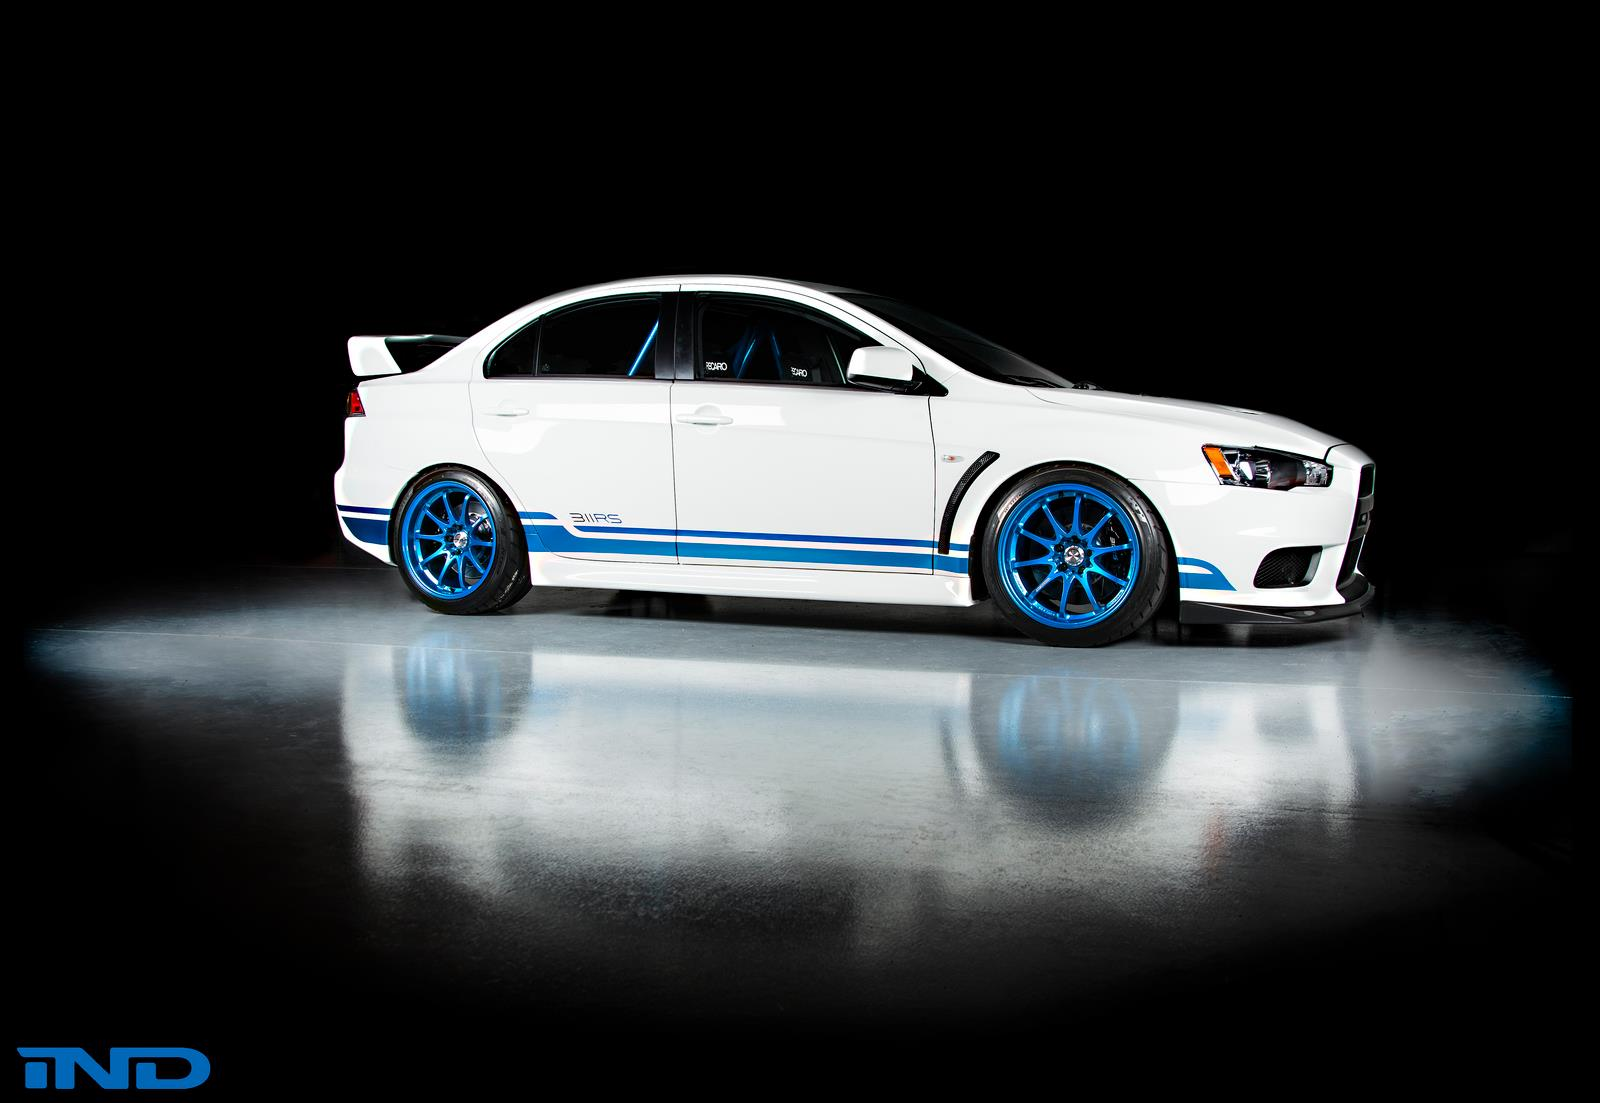 Exclusive Car Wallpapers Limited Production Ind Mitsubishi Evo X 311rs Released